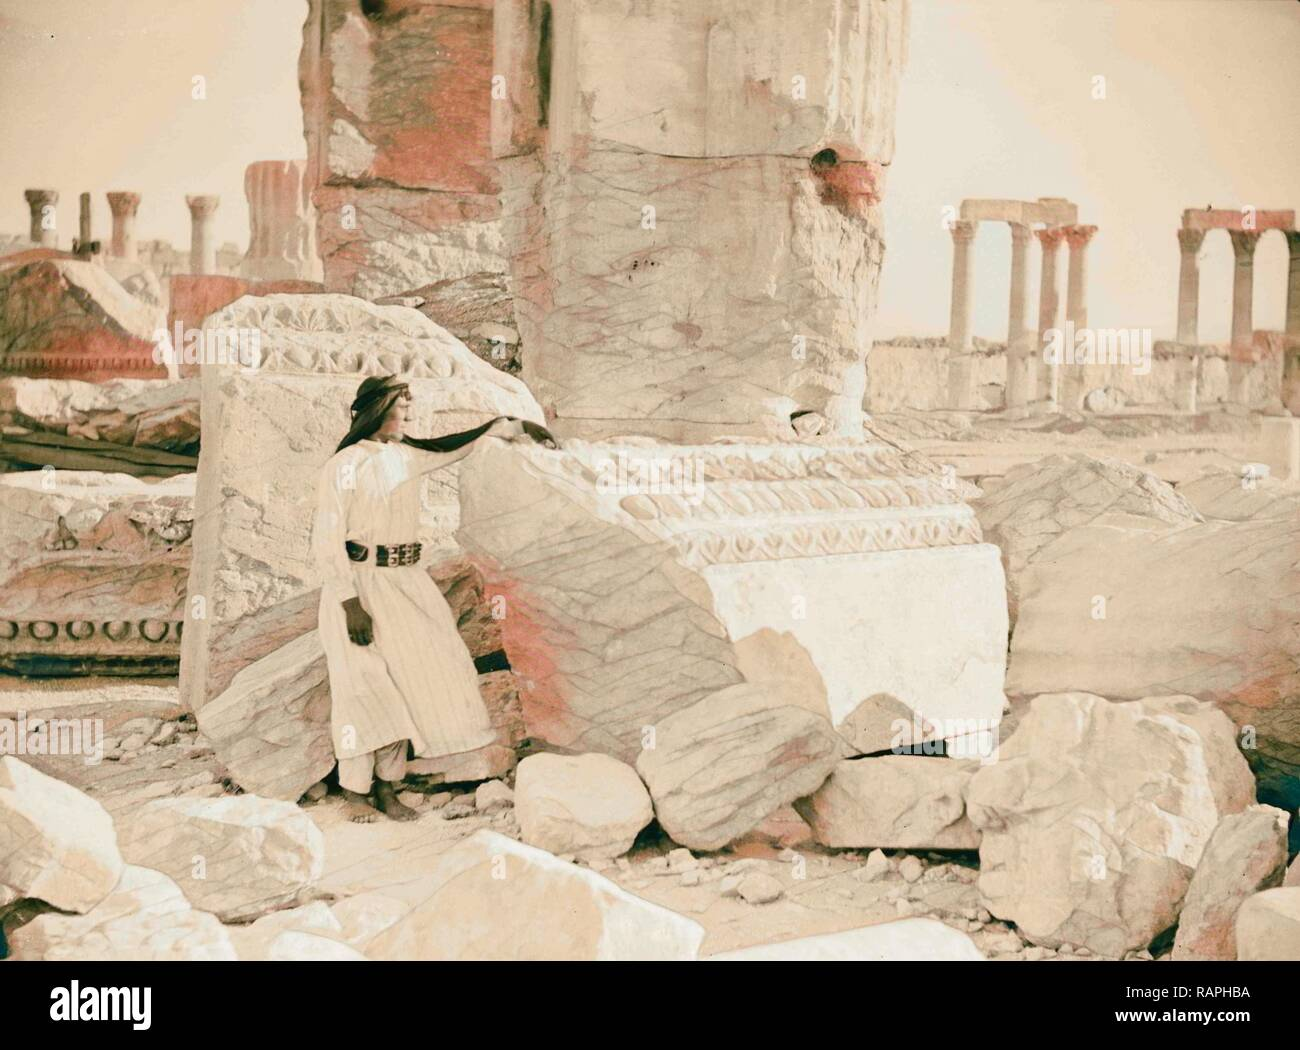 Palmyra. Temple of Baal. Fragments of the entablature, etc., at the main entrance. 1920, Syria, Tadmur. Reimagined - Stock Image